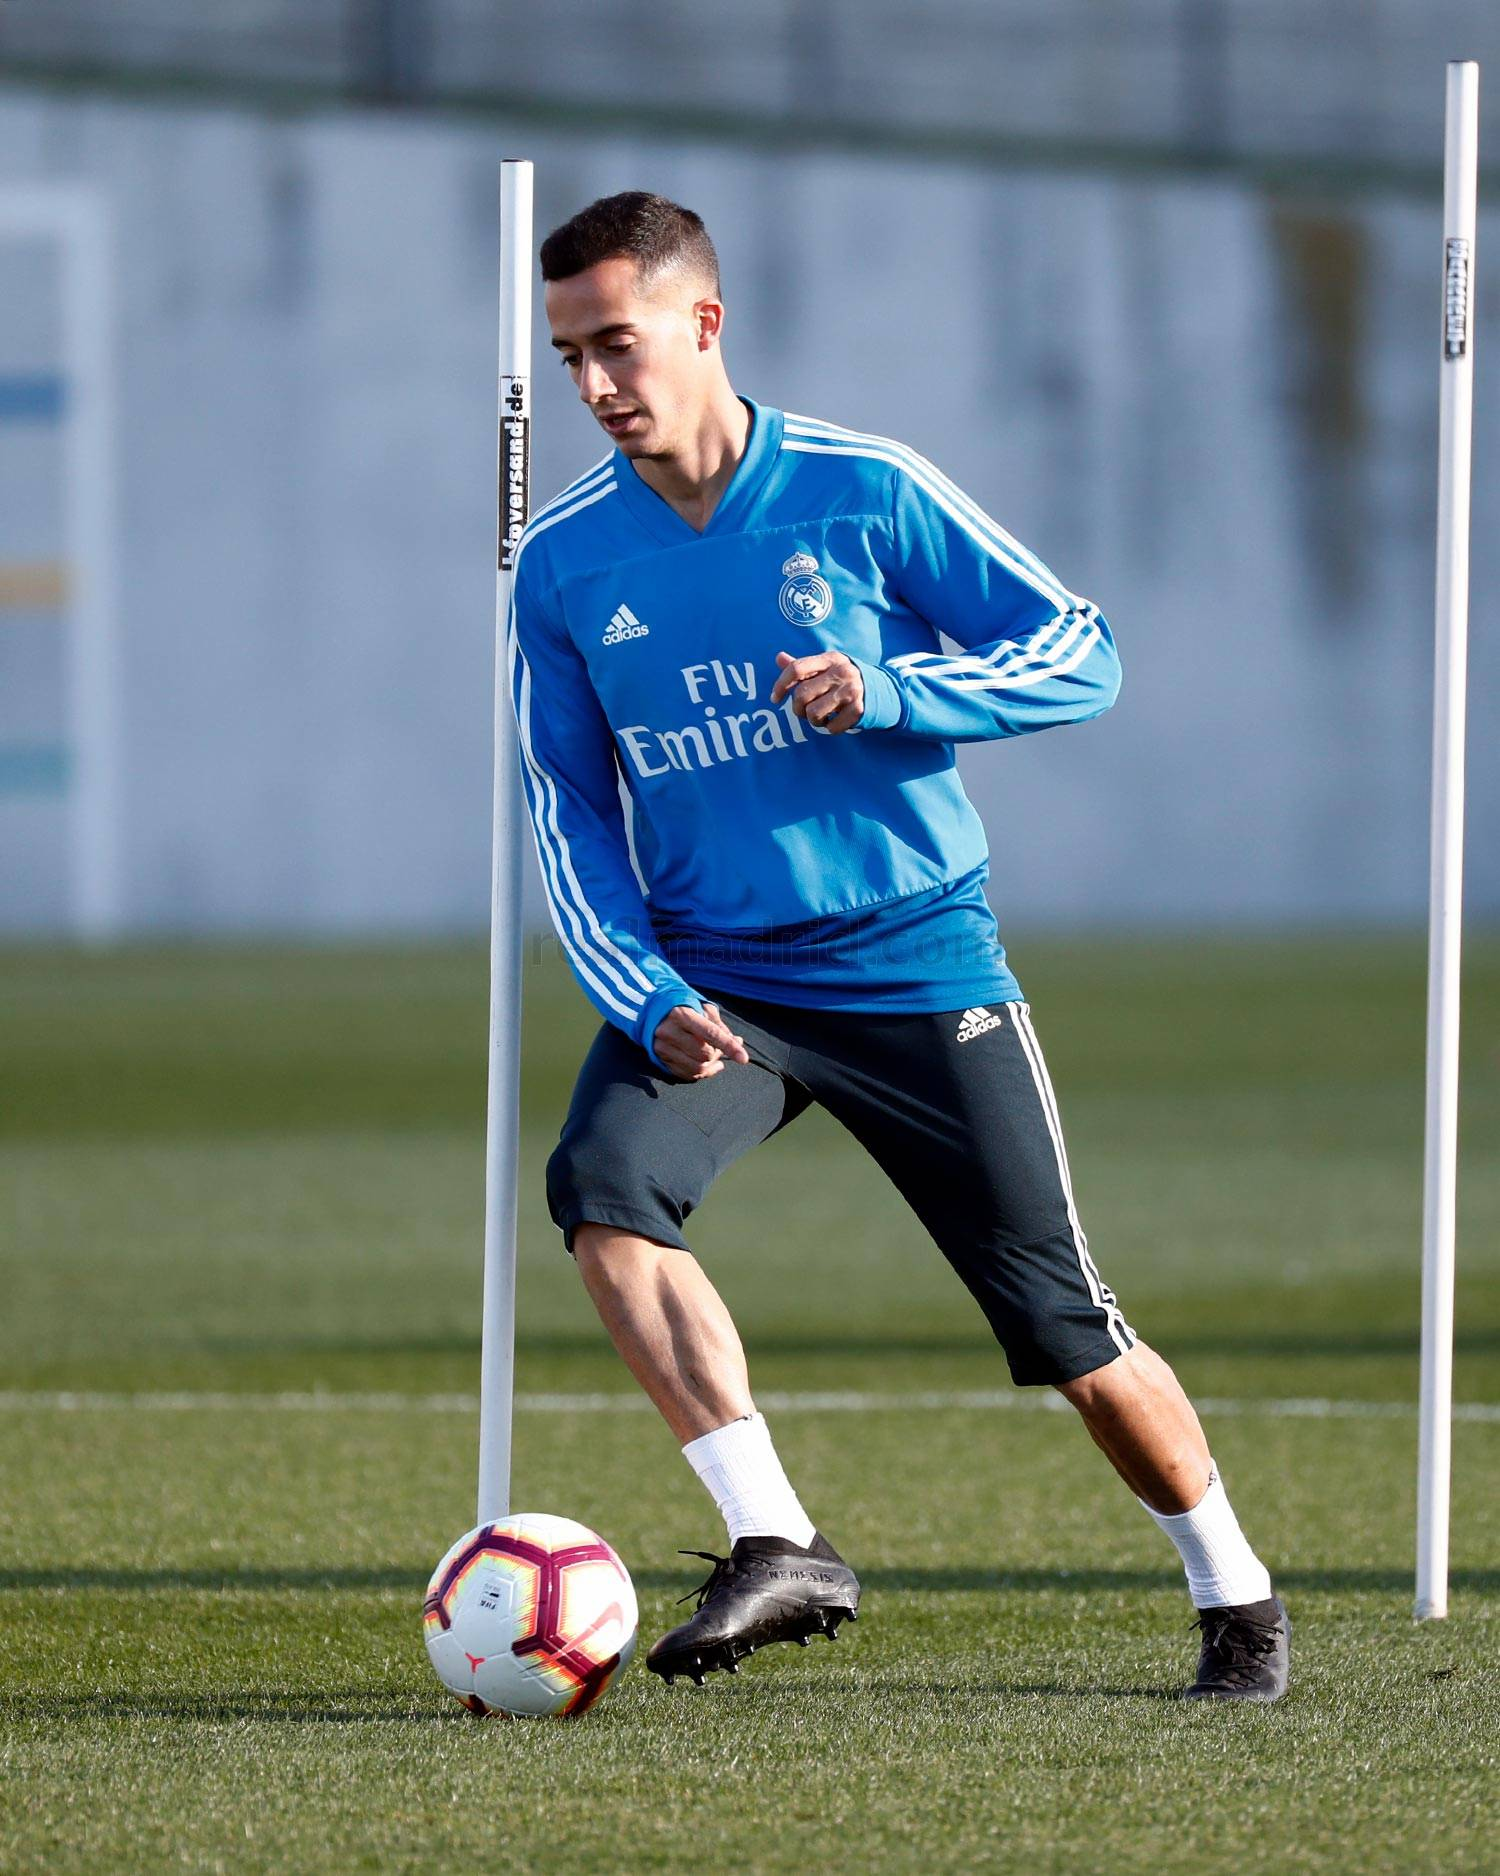 Real Madrid - Entrenamiento del Real Madrid - 19-03-2019